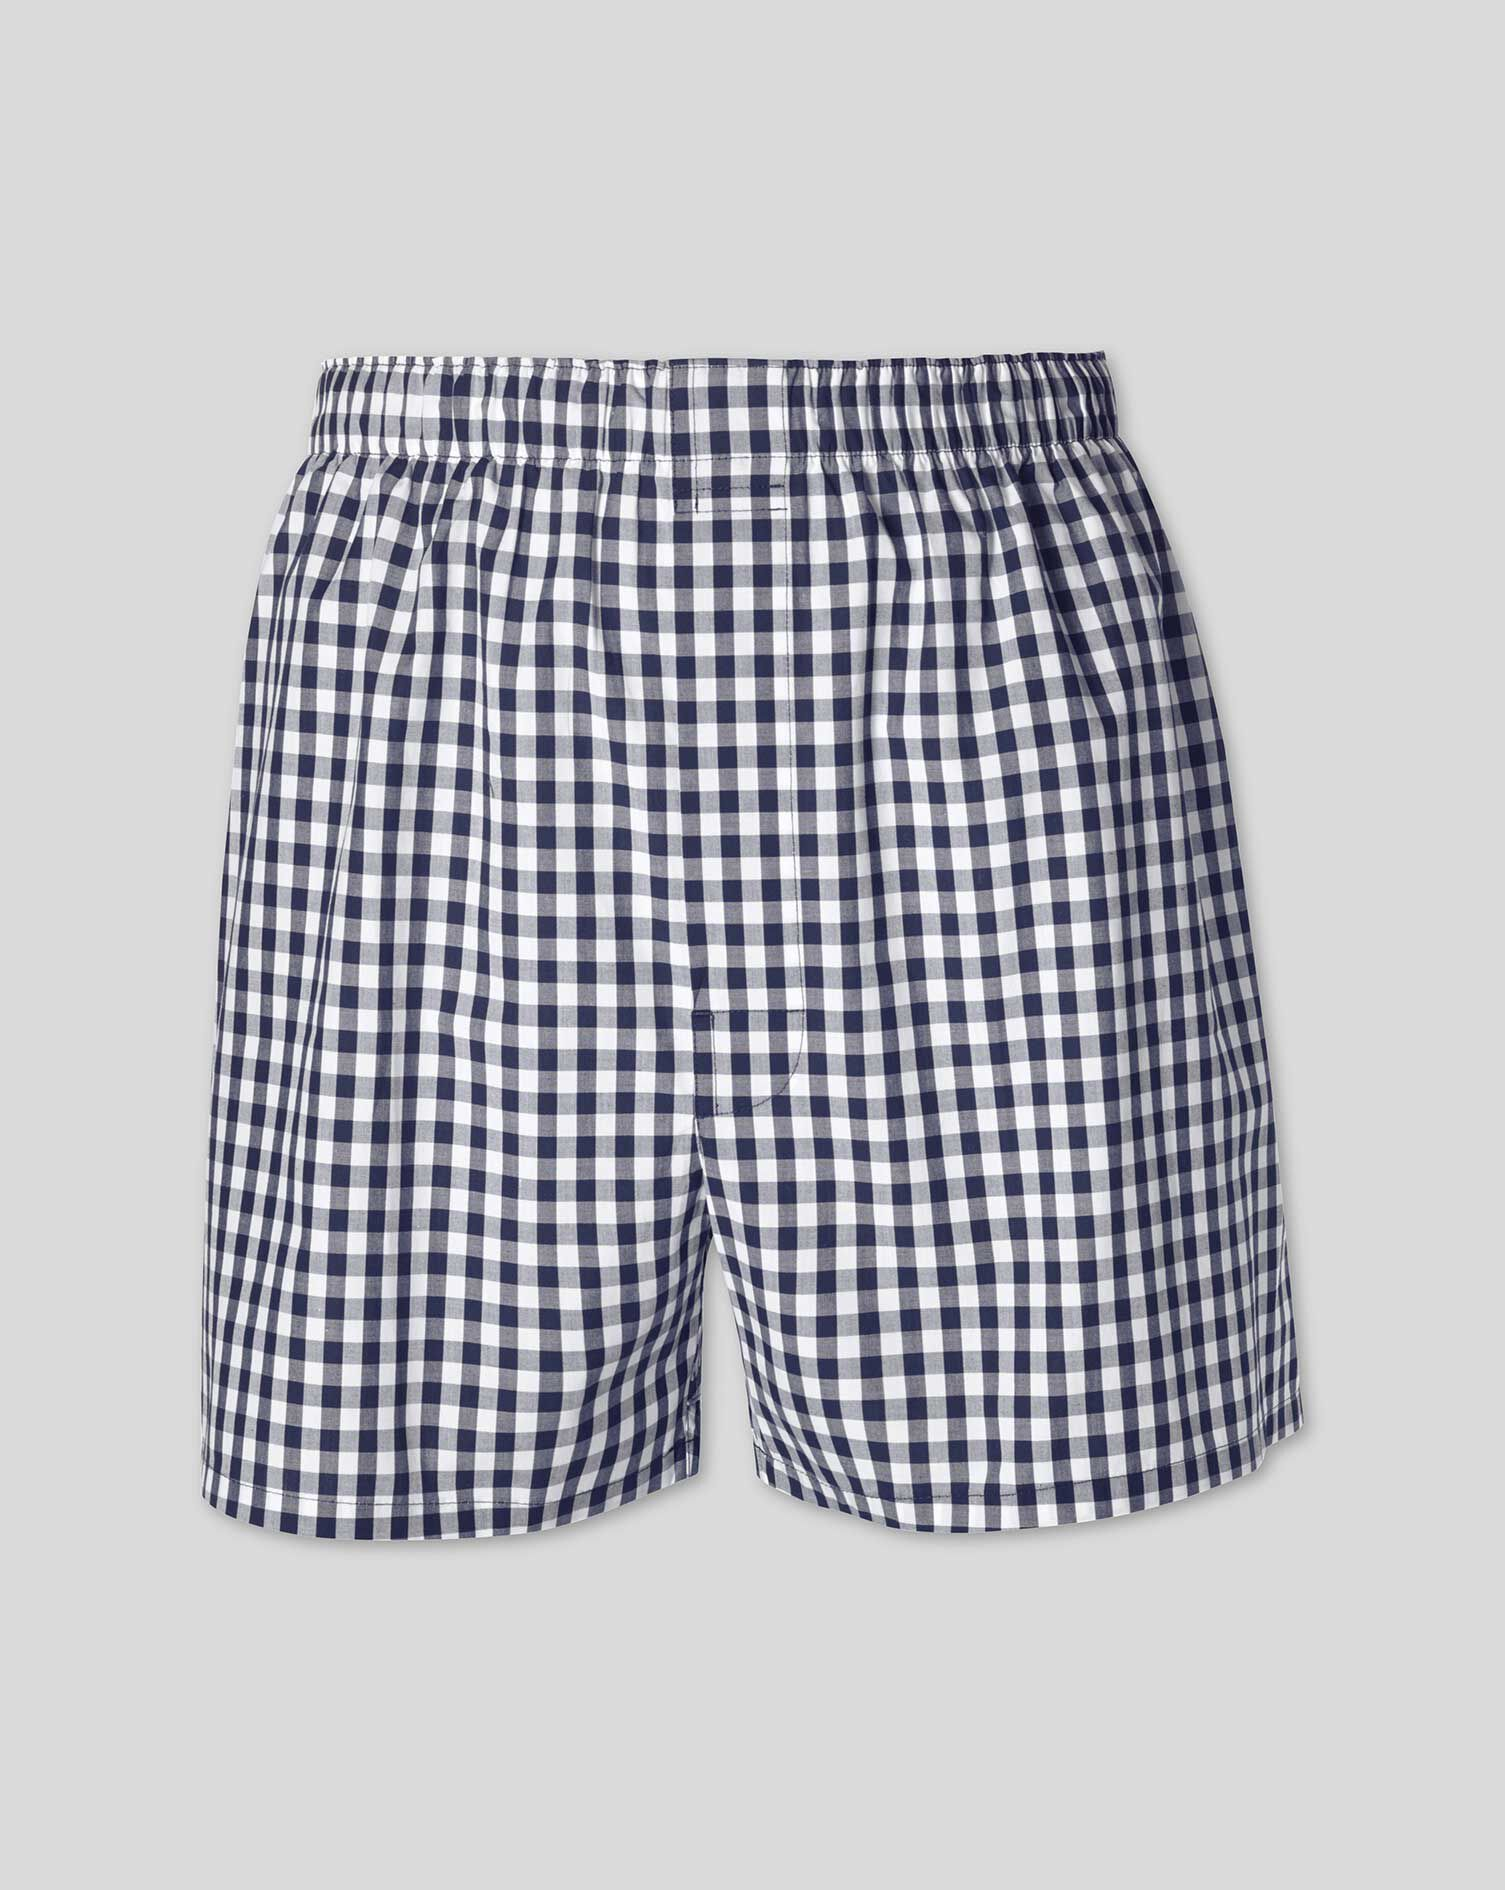 Navy Gingham Woven Boxers Size XXL by Charles Tyrwhitt